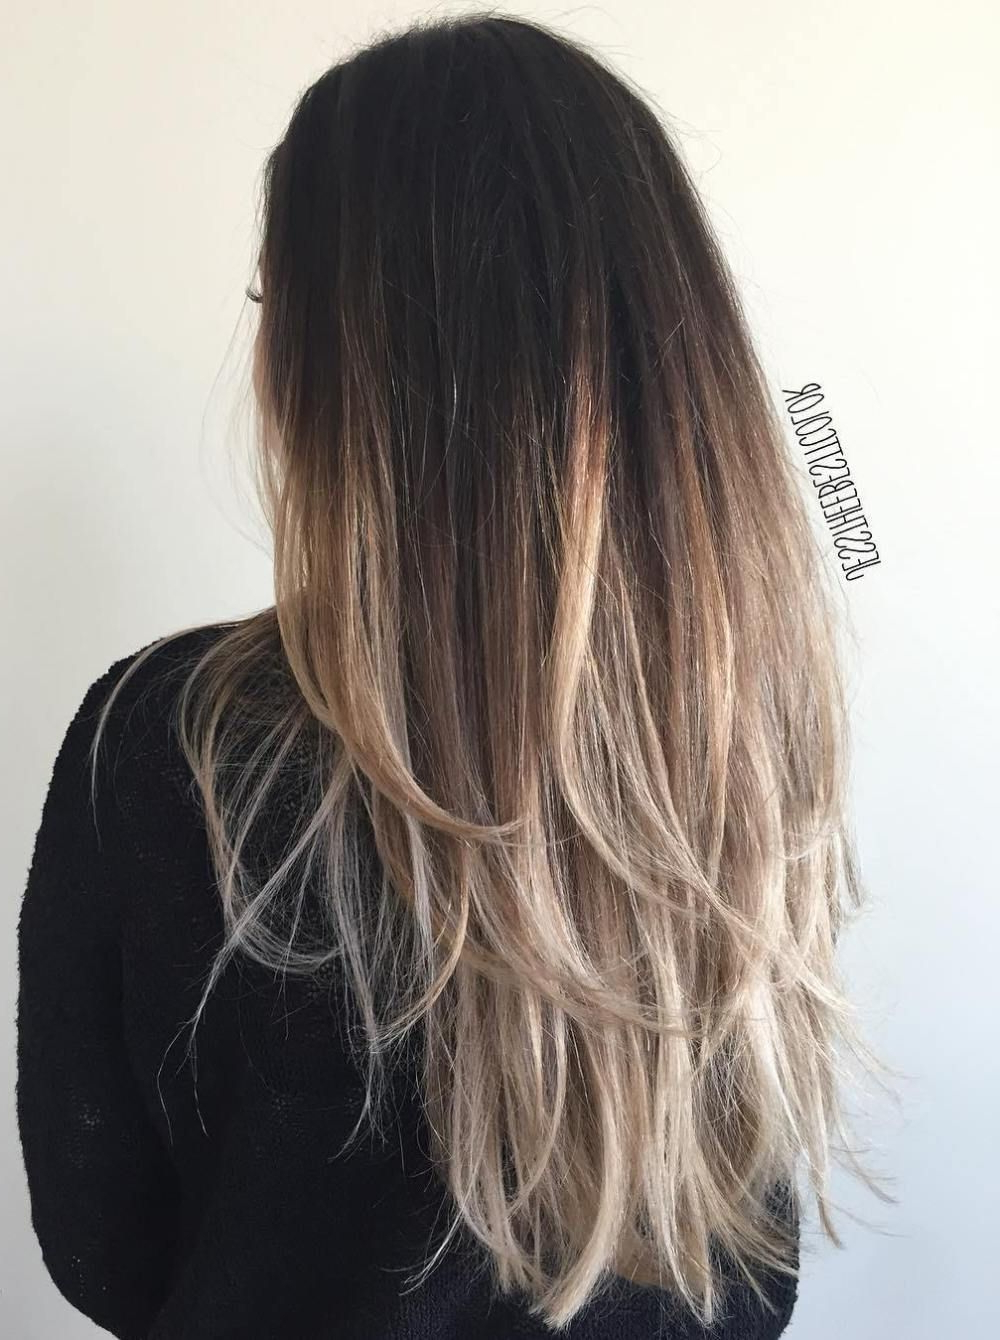 Trendy Long Voluminous Ombre Hairstyles With Layers Pertaining To 80 Cute Layered Hairstyles And Cuts For Long Hair (View 12 of 20)